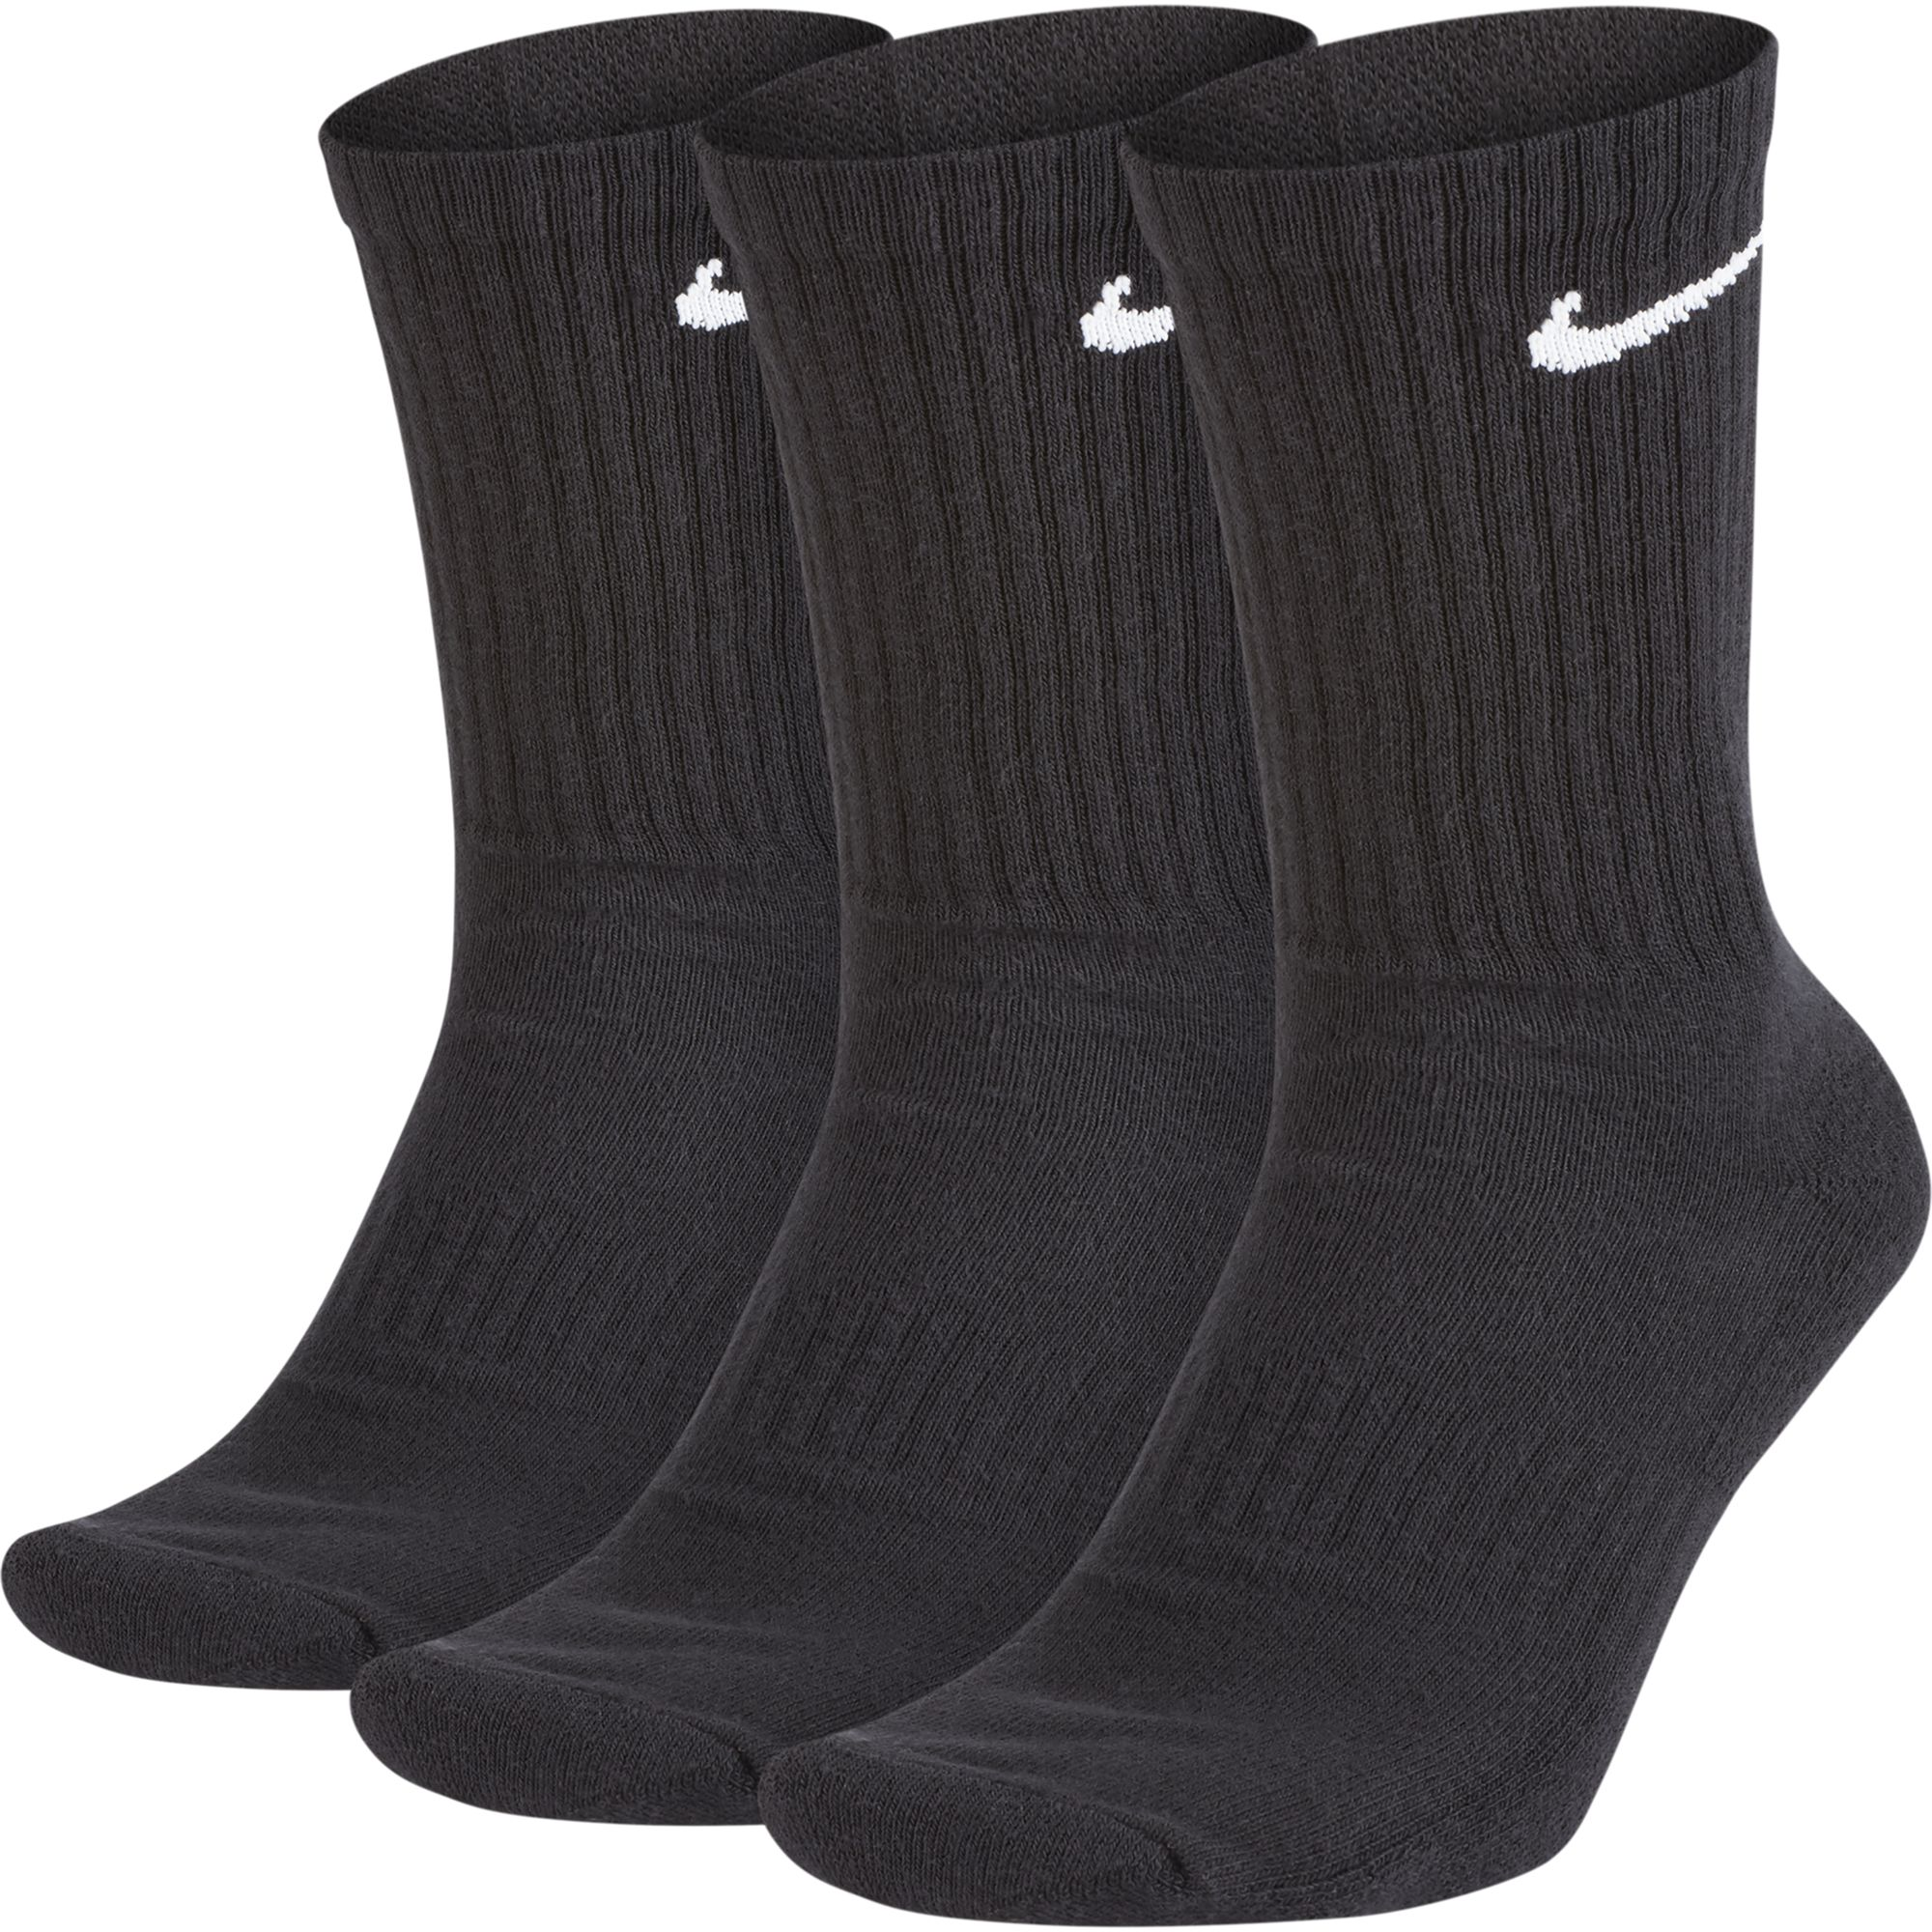 Youth 3 Pack Everyday Cushion Crew Socks, , large